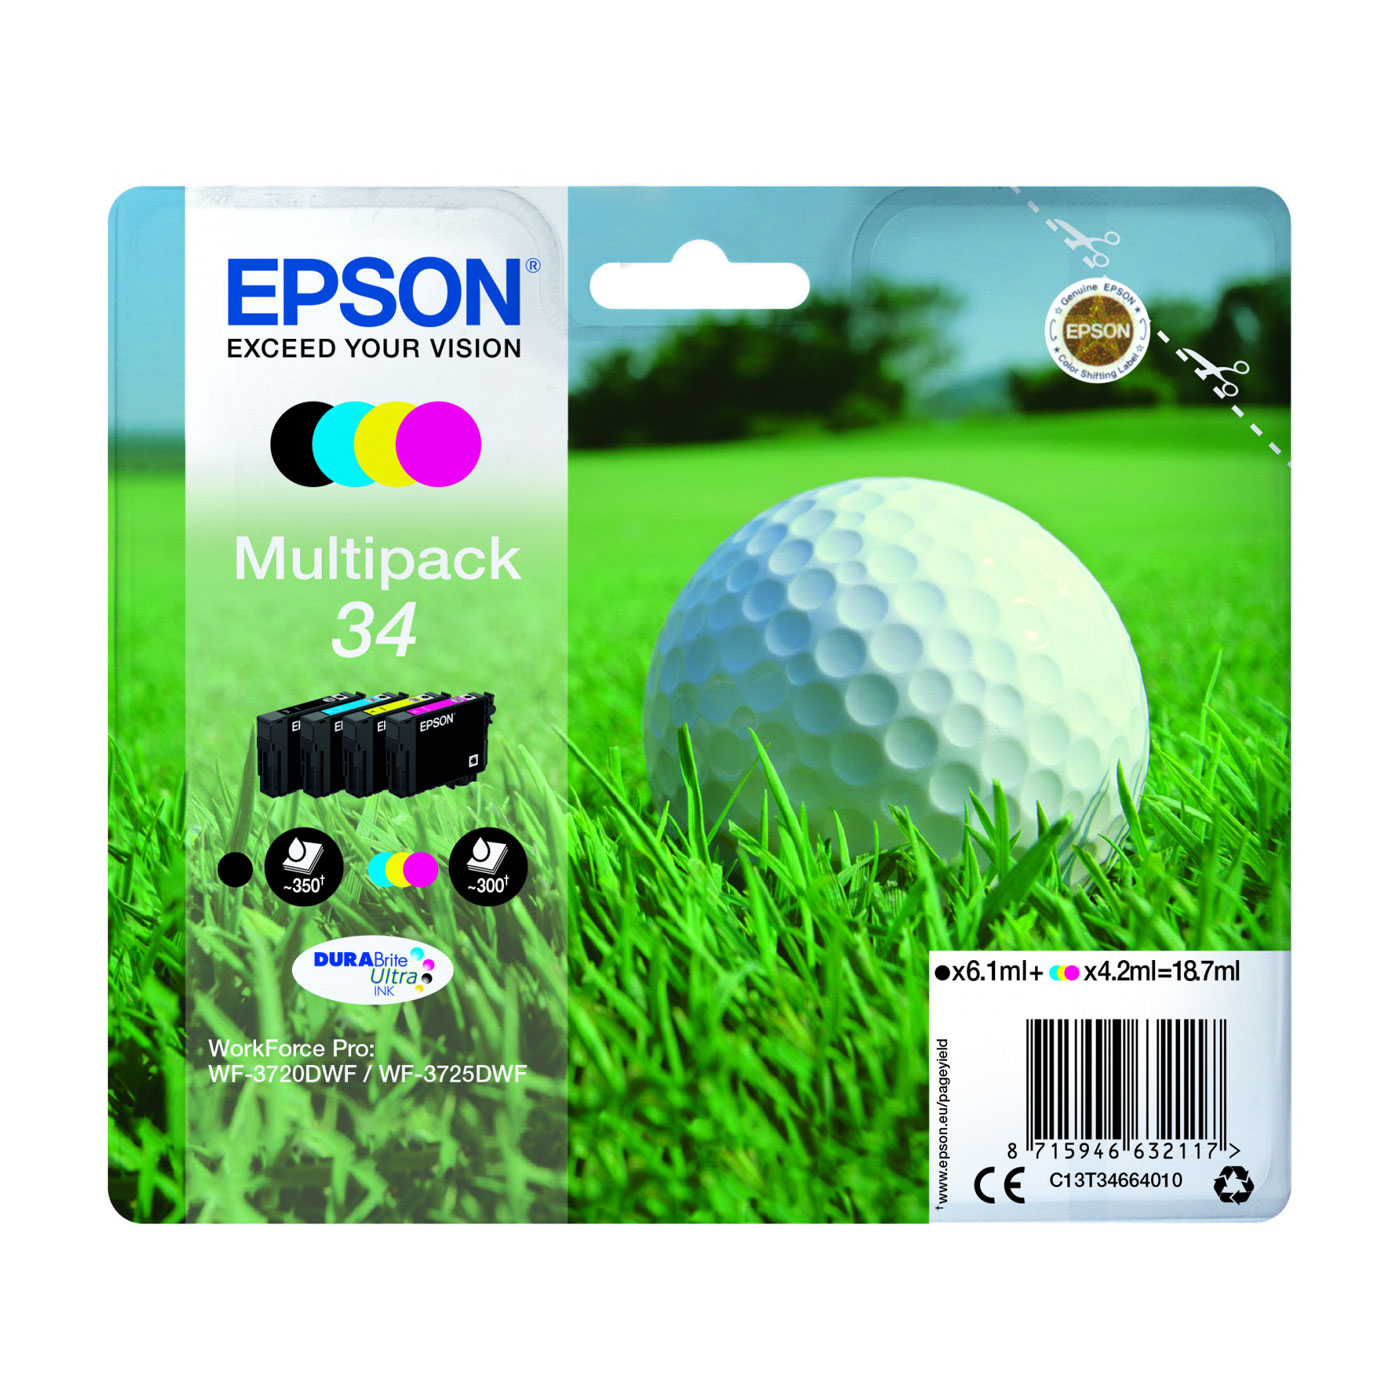 epson balle de golf multipack 34 cartouche imprimante epson sur. Black Bedroom Furniture Sets. Home Design Ideas